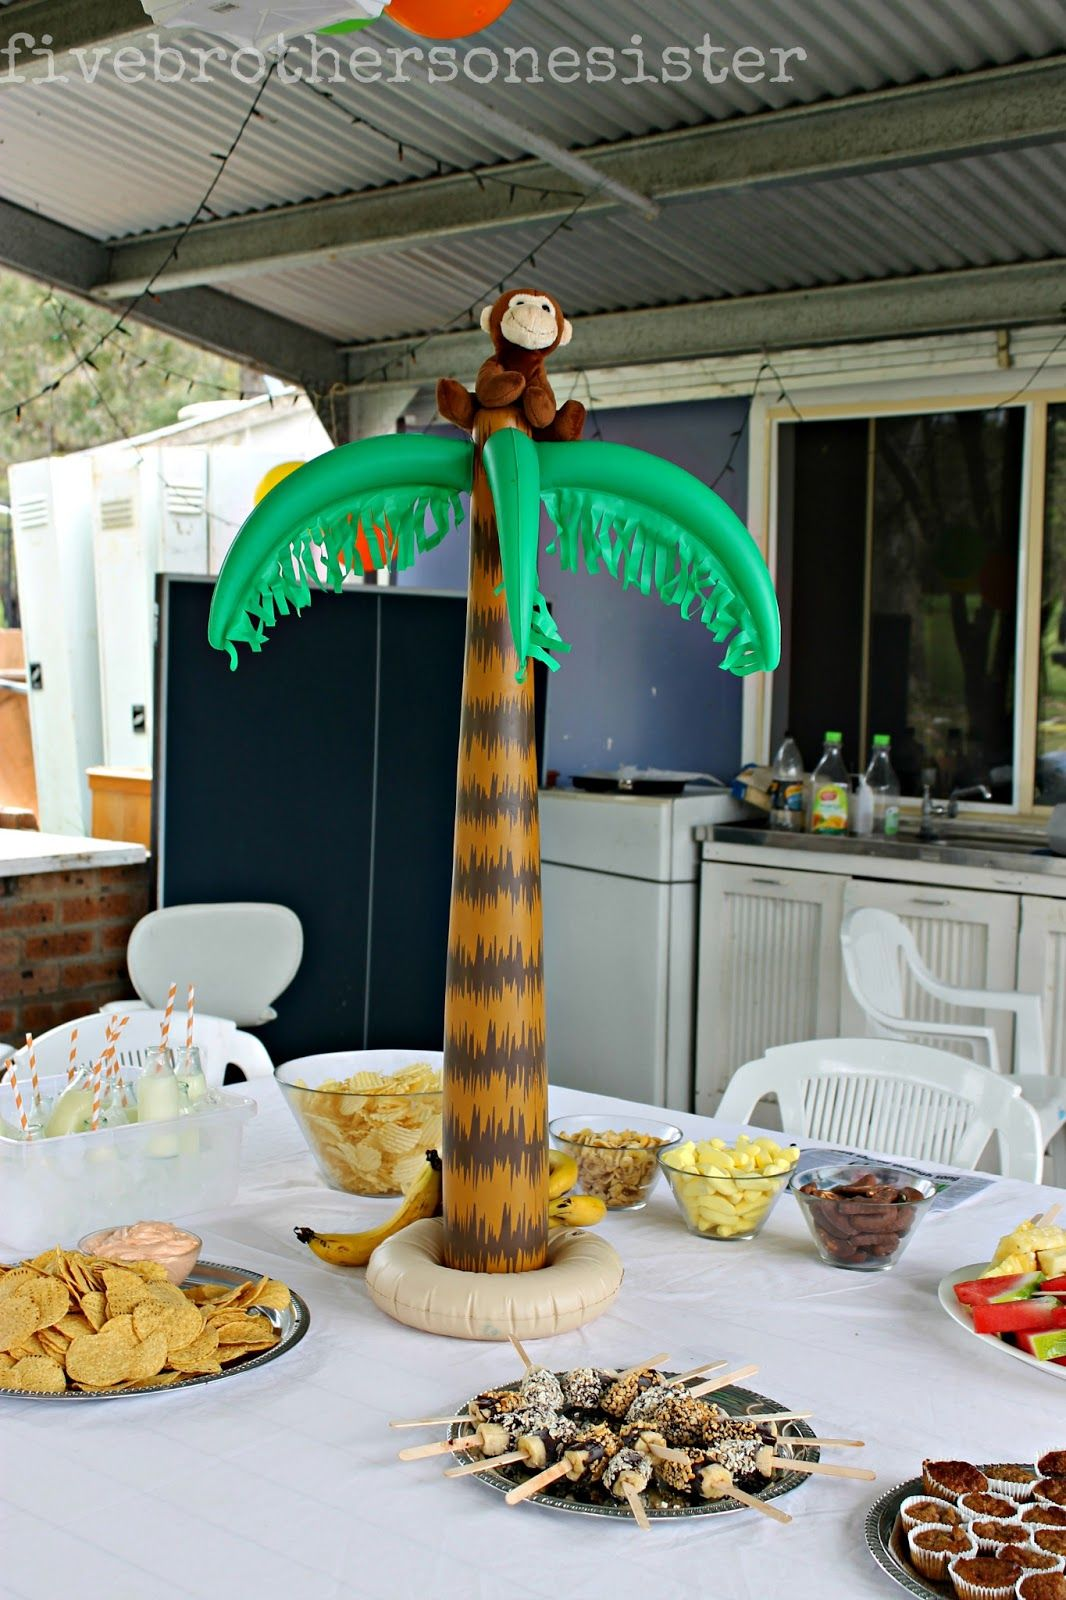 Five Brothers One Sister Funky Monkey Party Yummy Themed Food Ideas